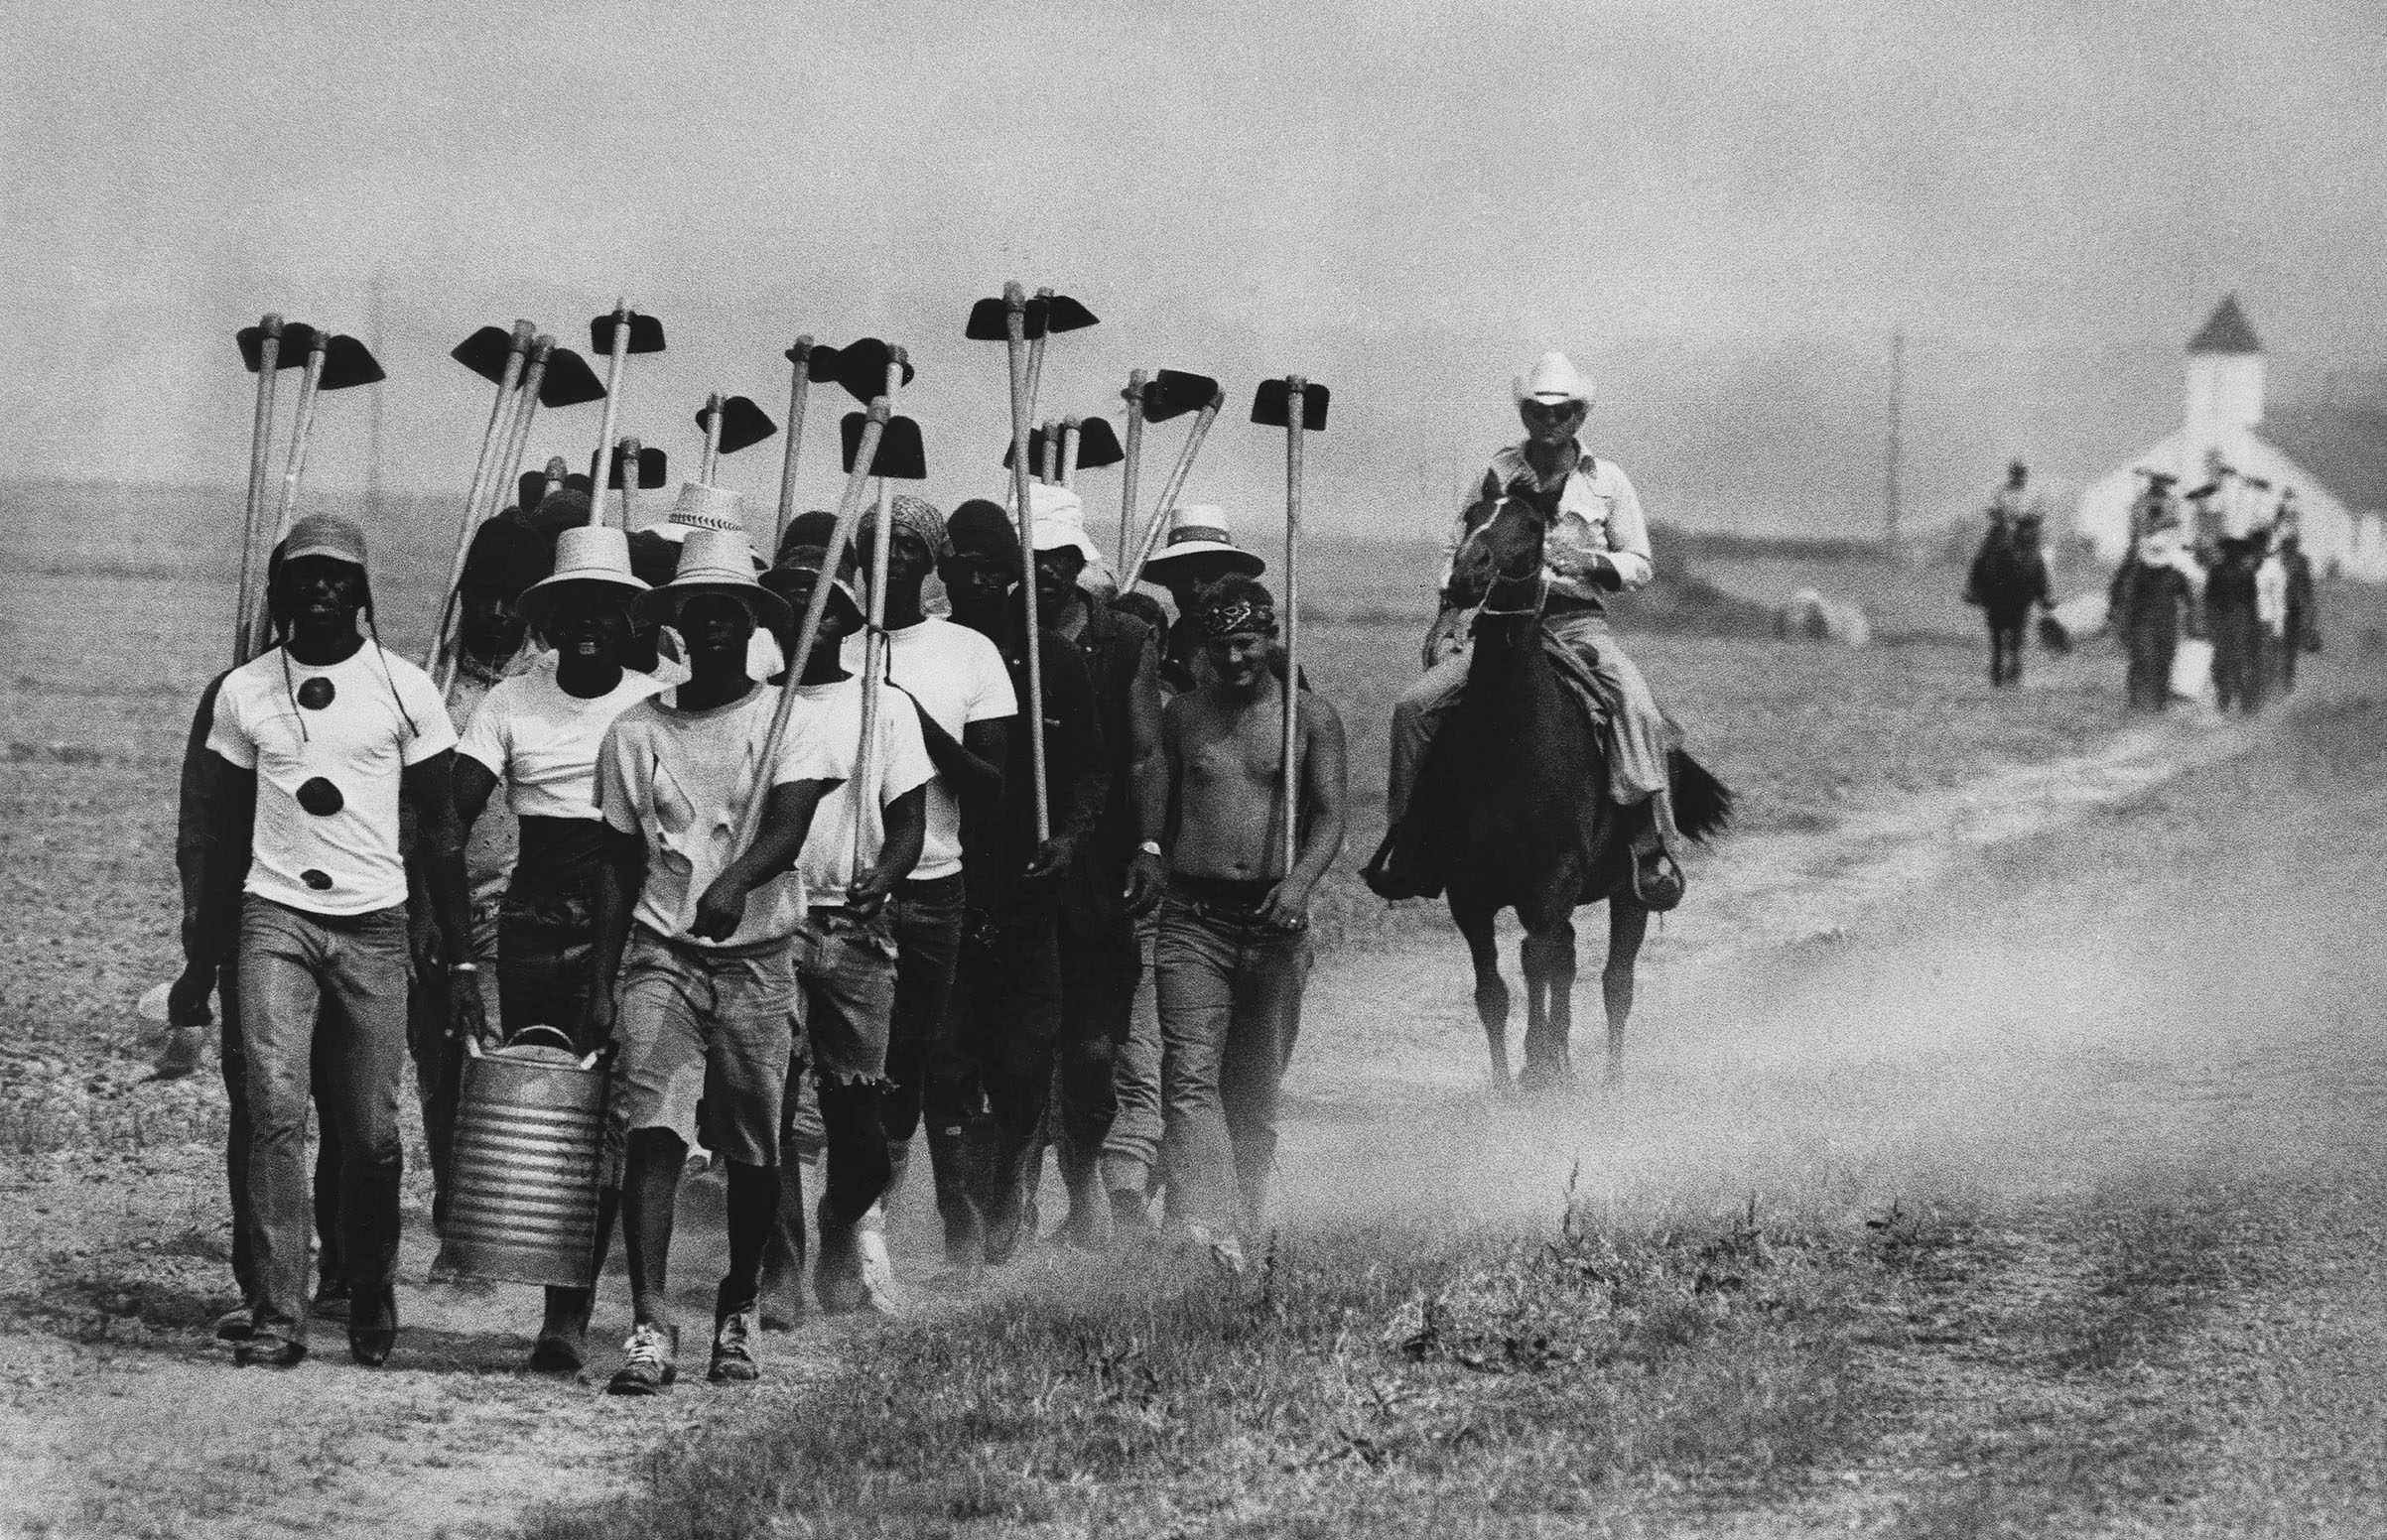 Inmates at Louisiana State Prison in Angola, La., march down a dusty trail on May 30, 1977, en route to working in the fields.